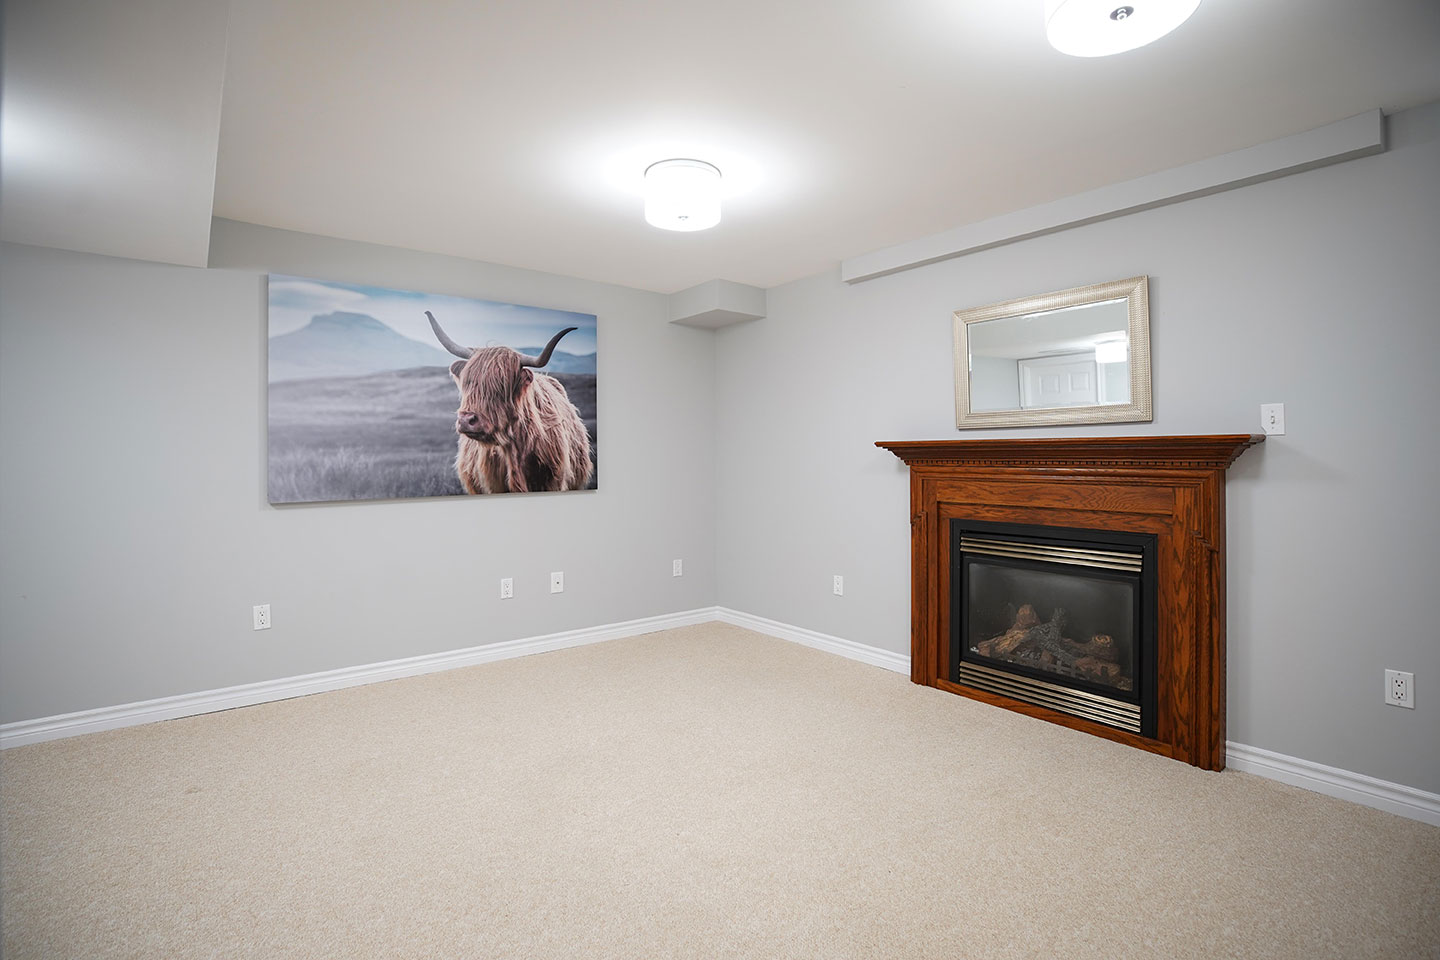 121 Nicholson - Family Room After Renovation